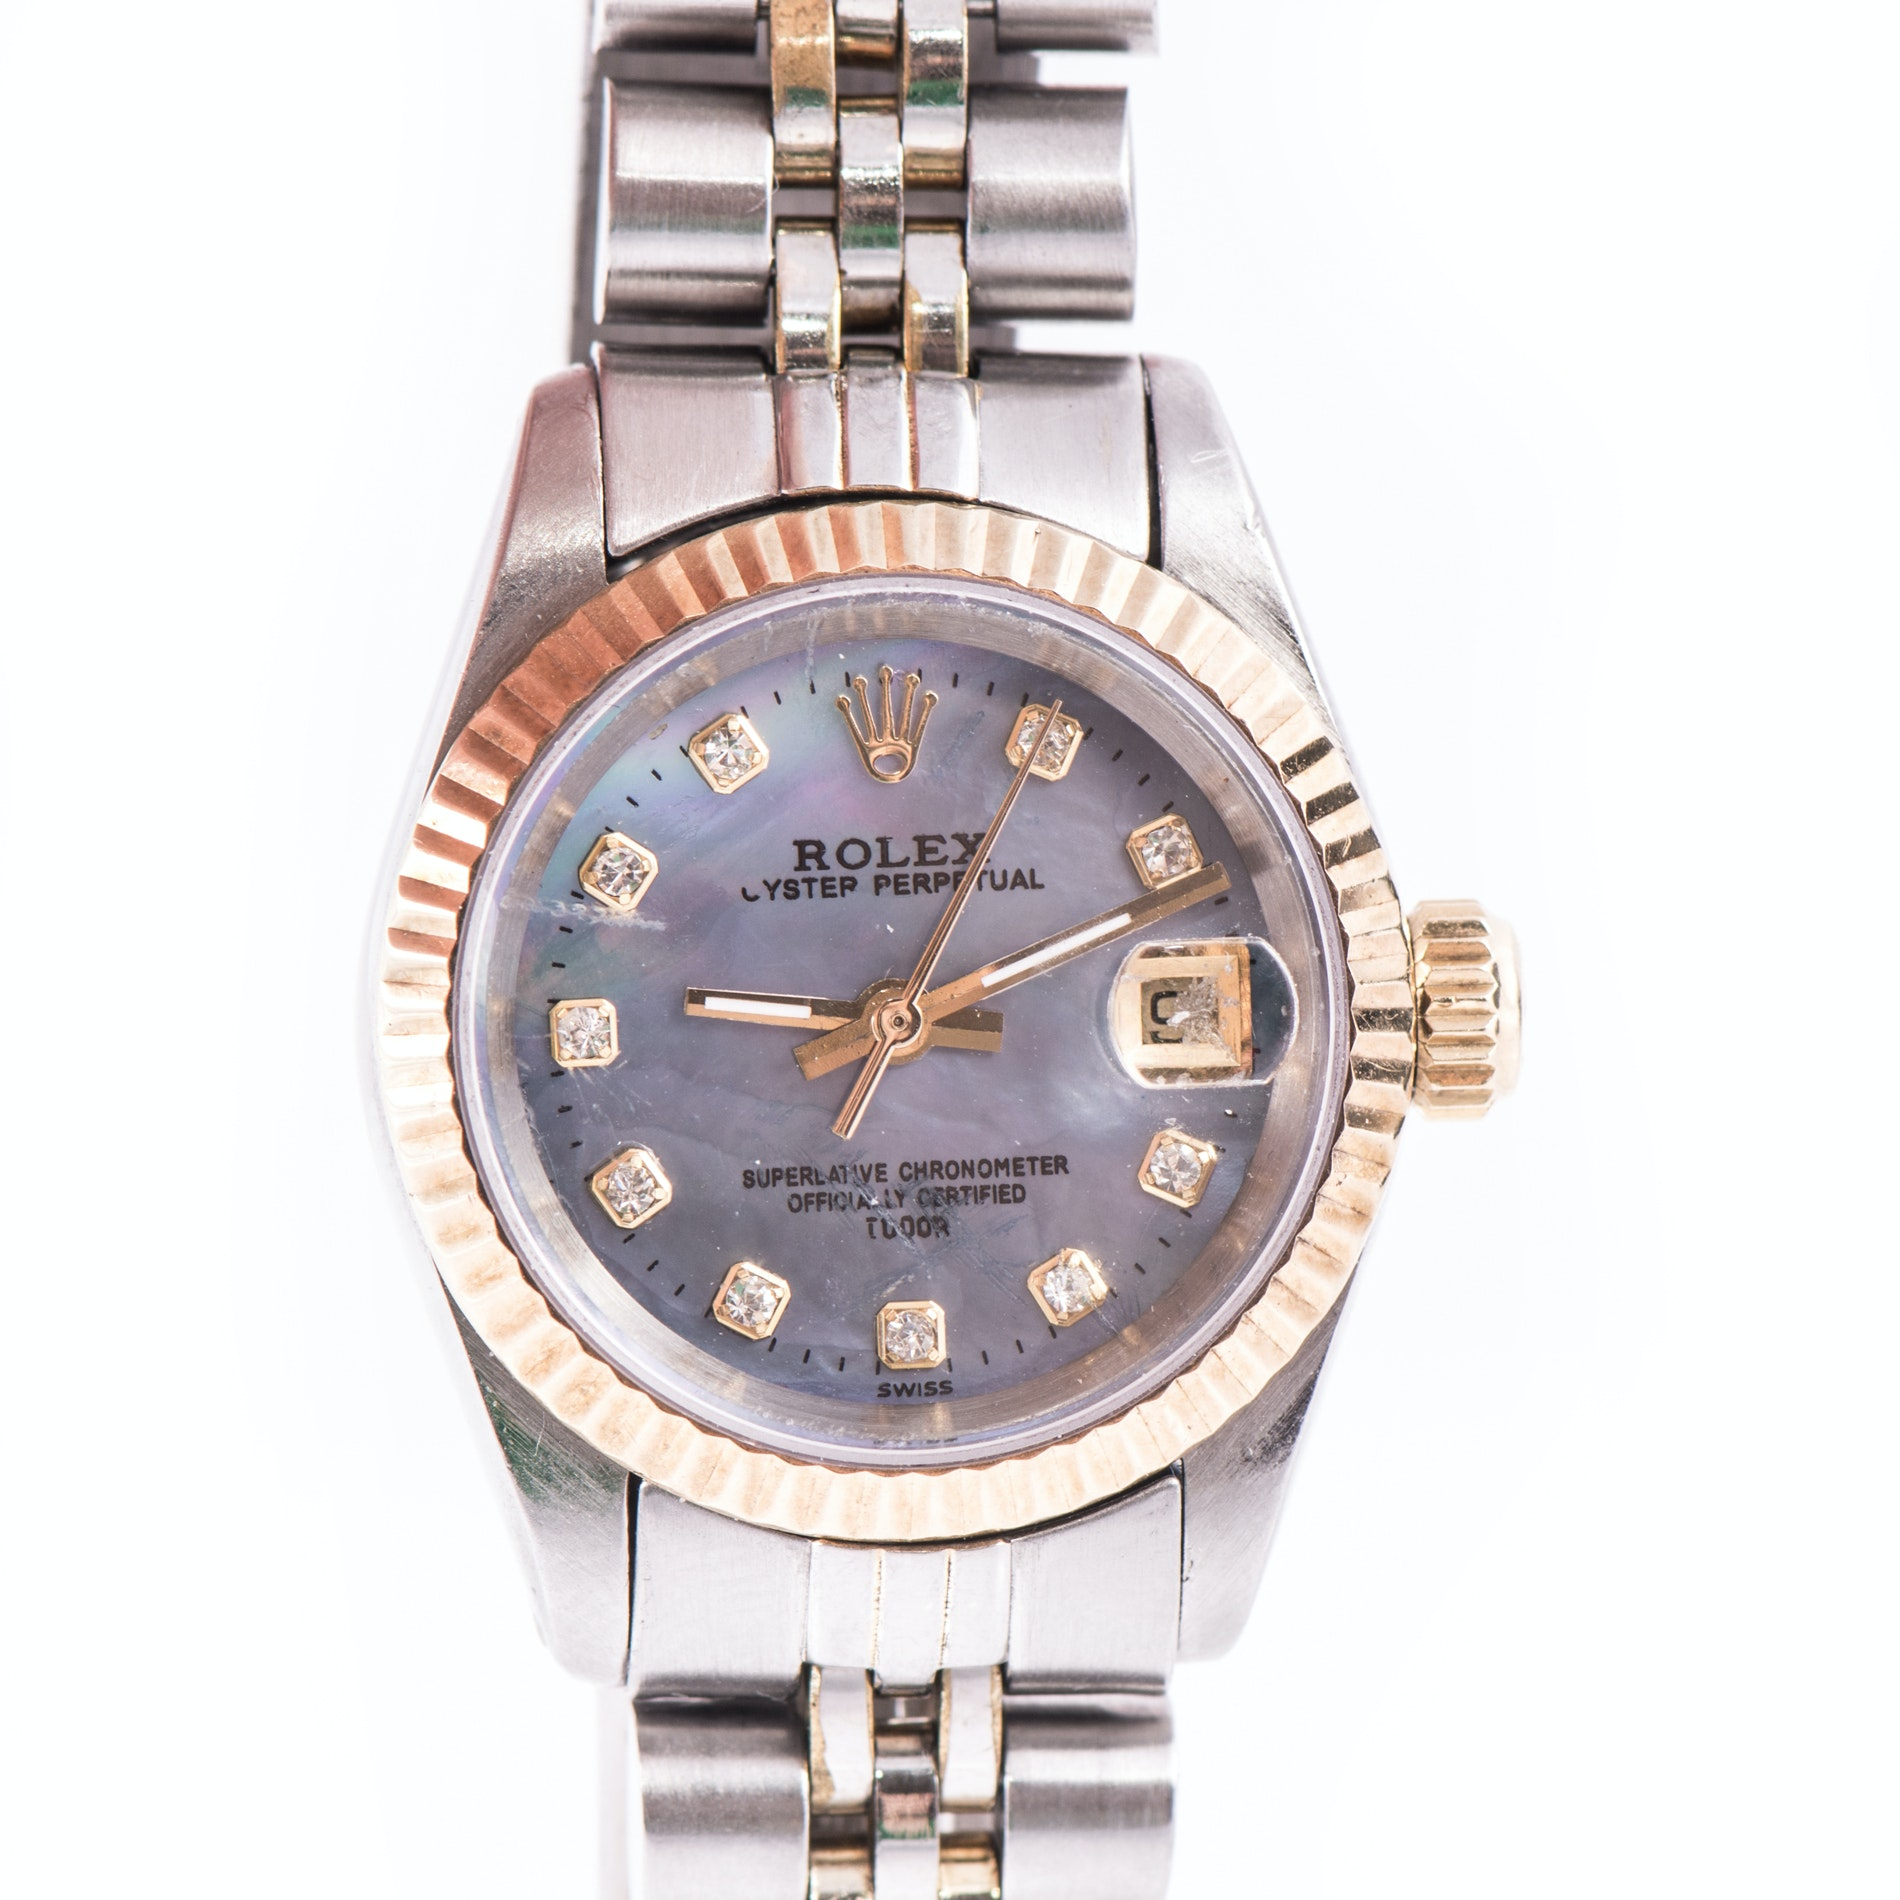 Rolex 18K and Stainless Steel Oyster Perpetual Wristwatch